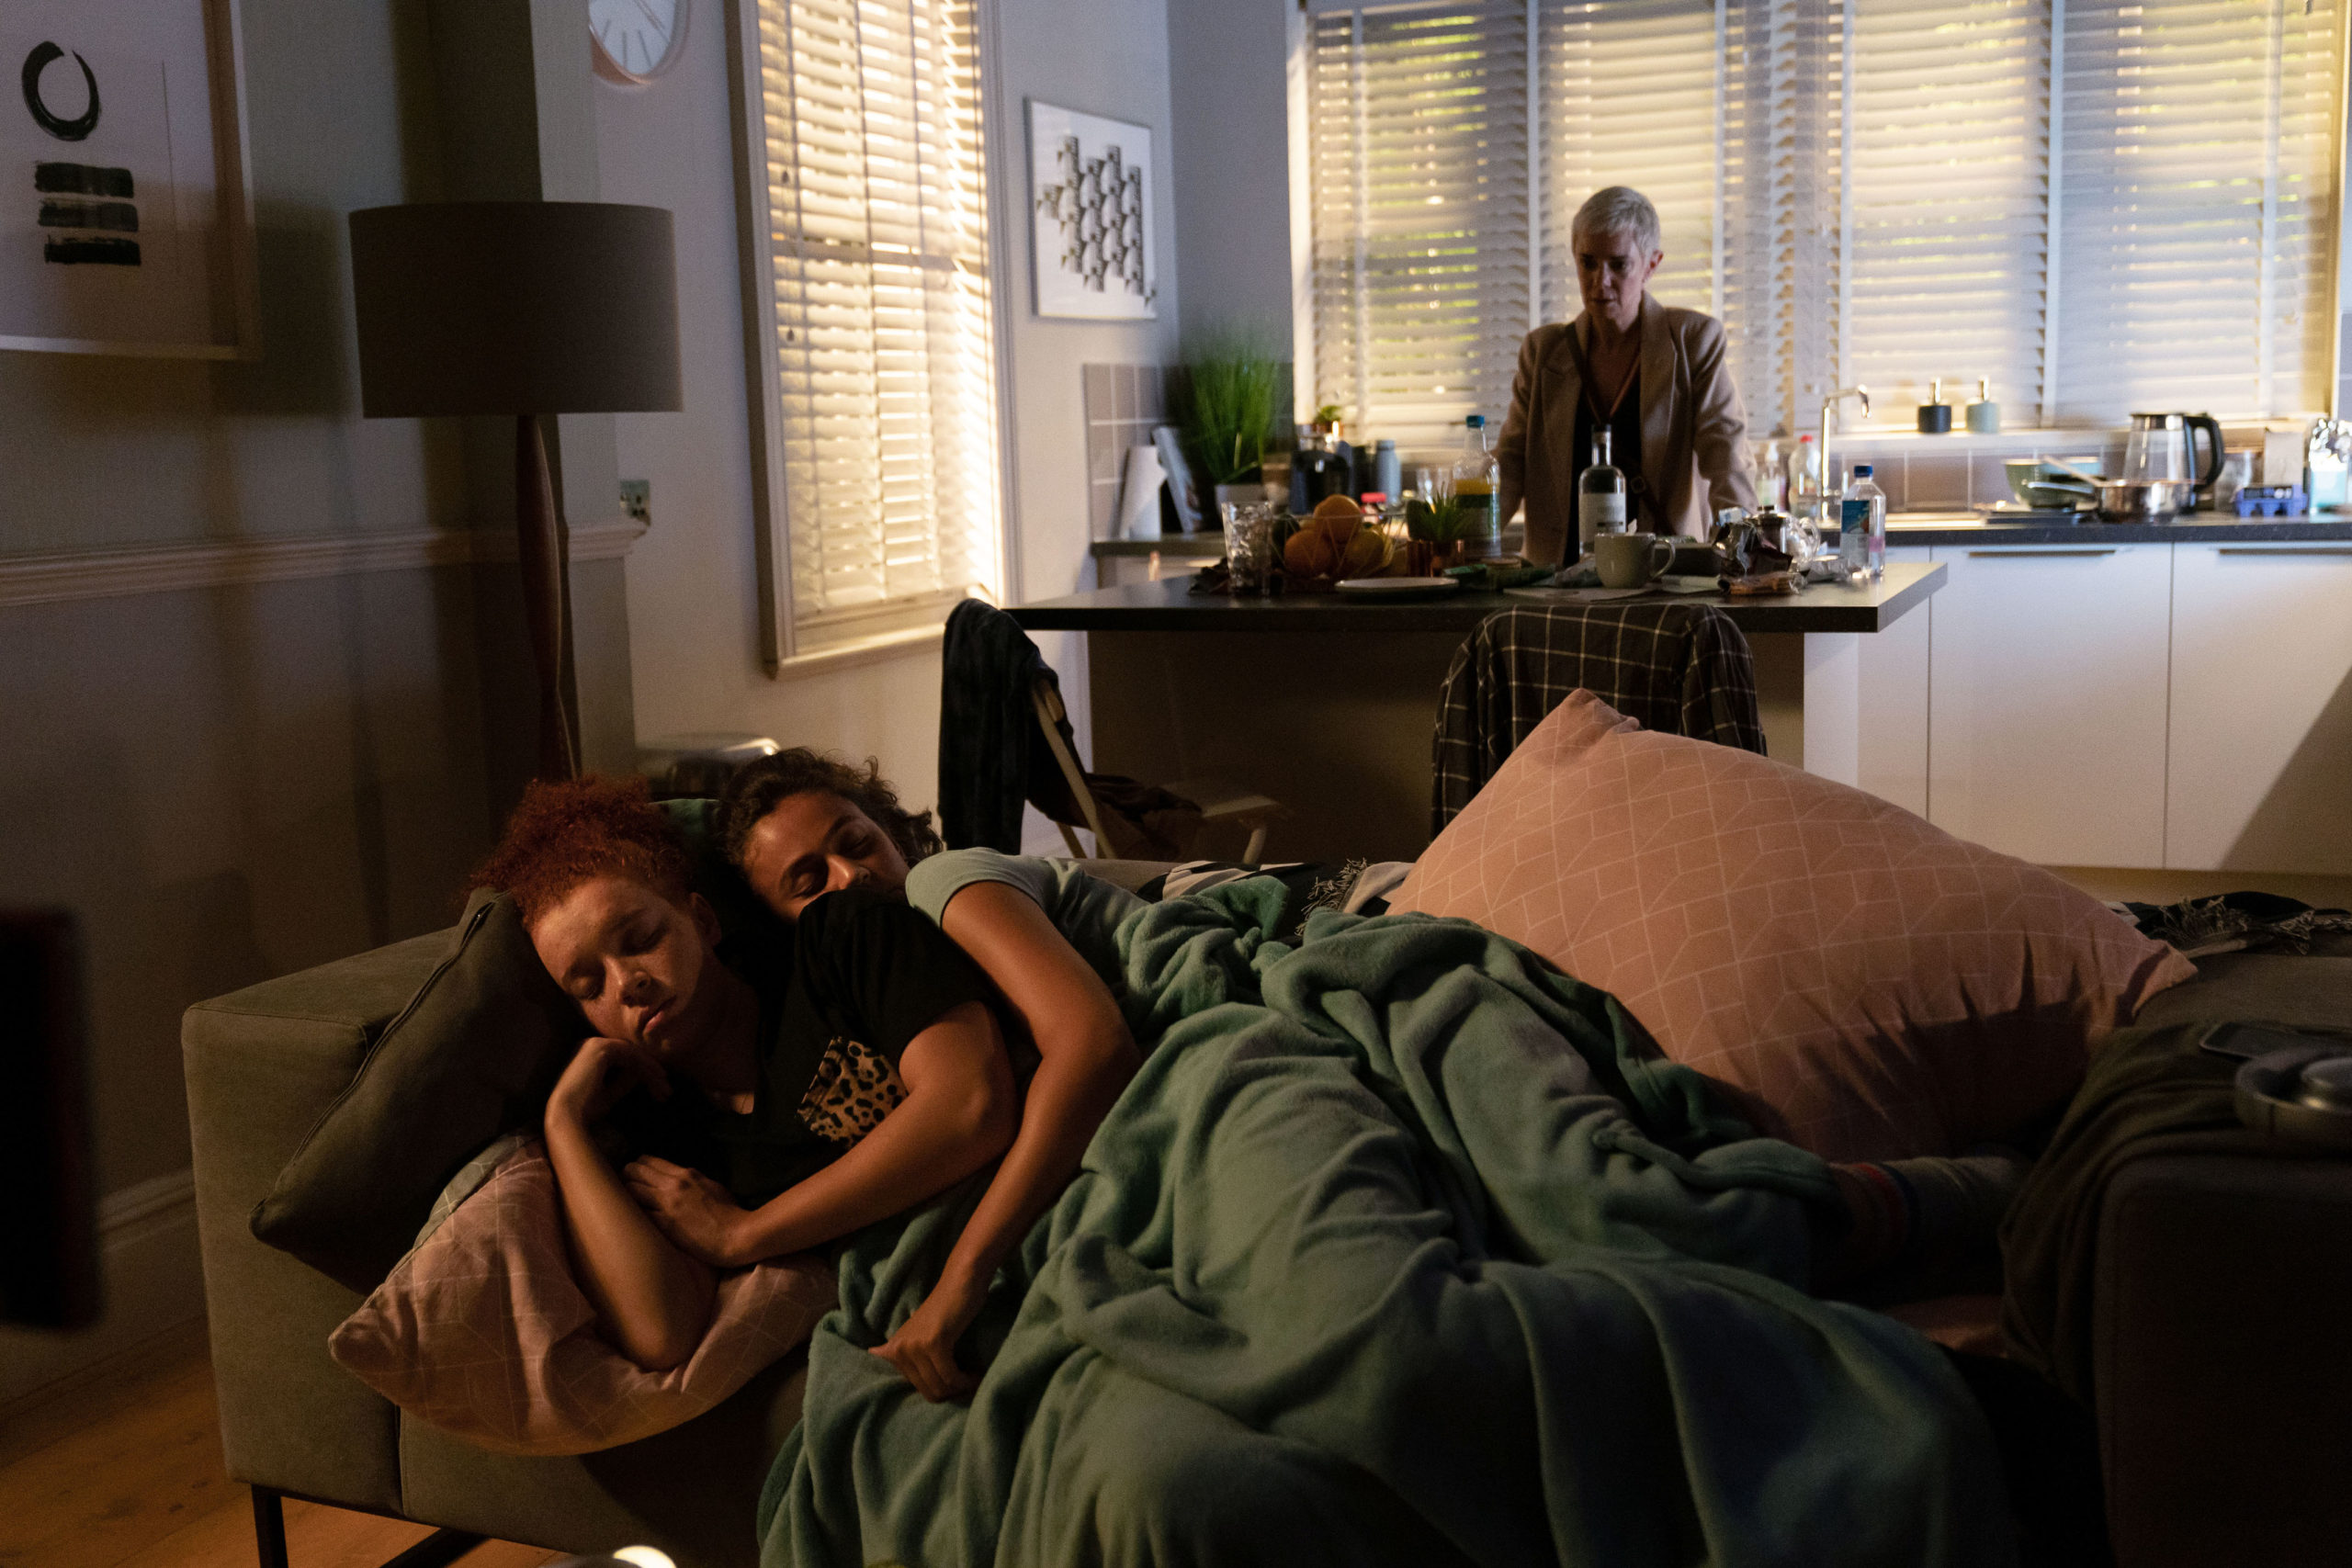 Maya and her girlfriend sleeping in Belle's flat